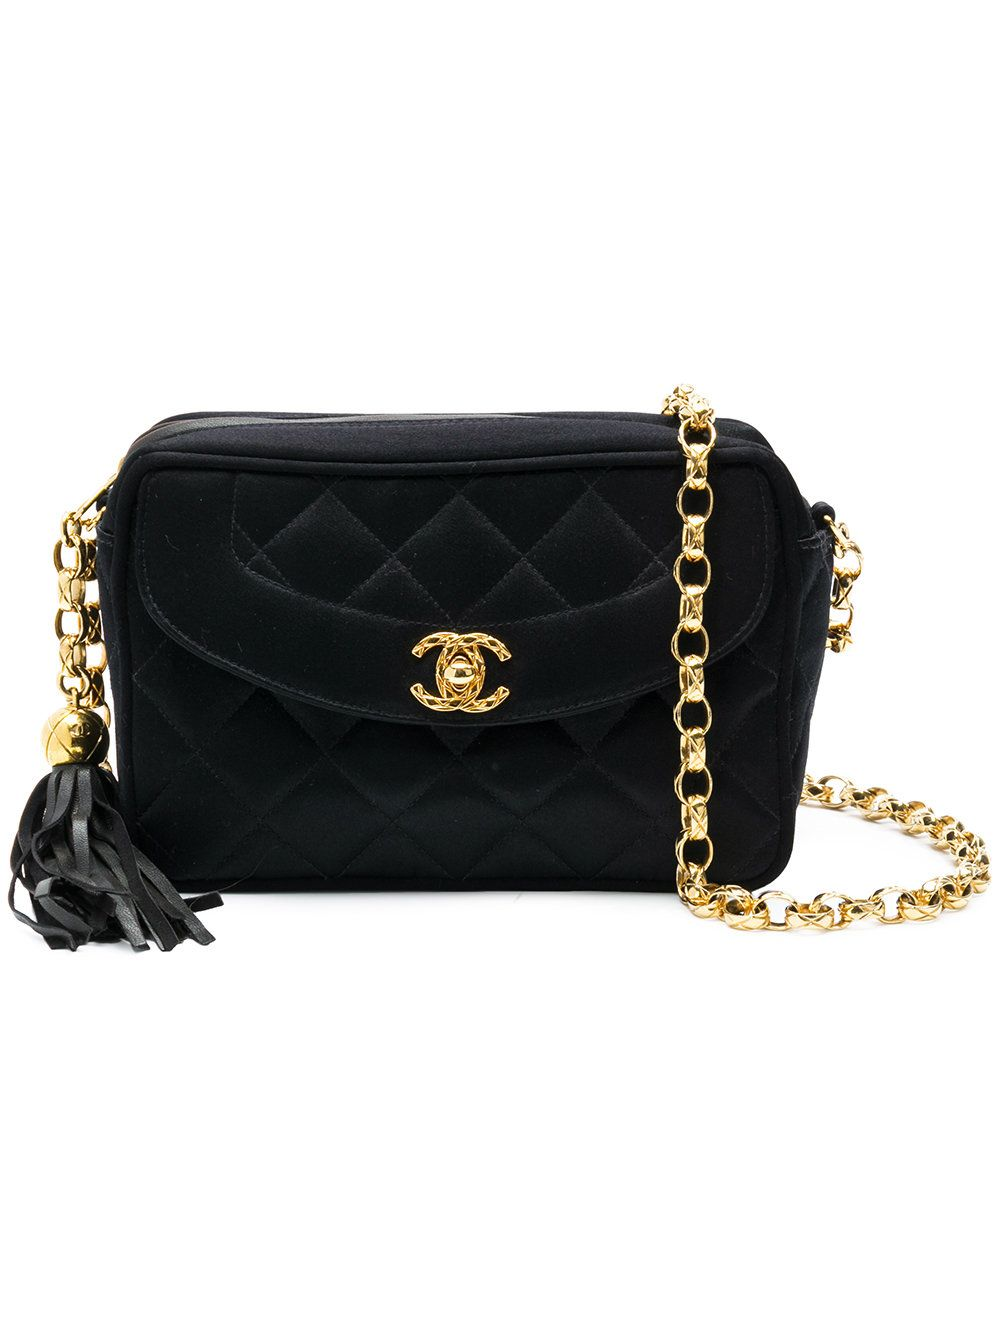 20d6ac0f1376 Chanel Vintage diamond quilted camera bag | Vintage bags in 2019 ...